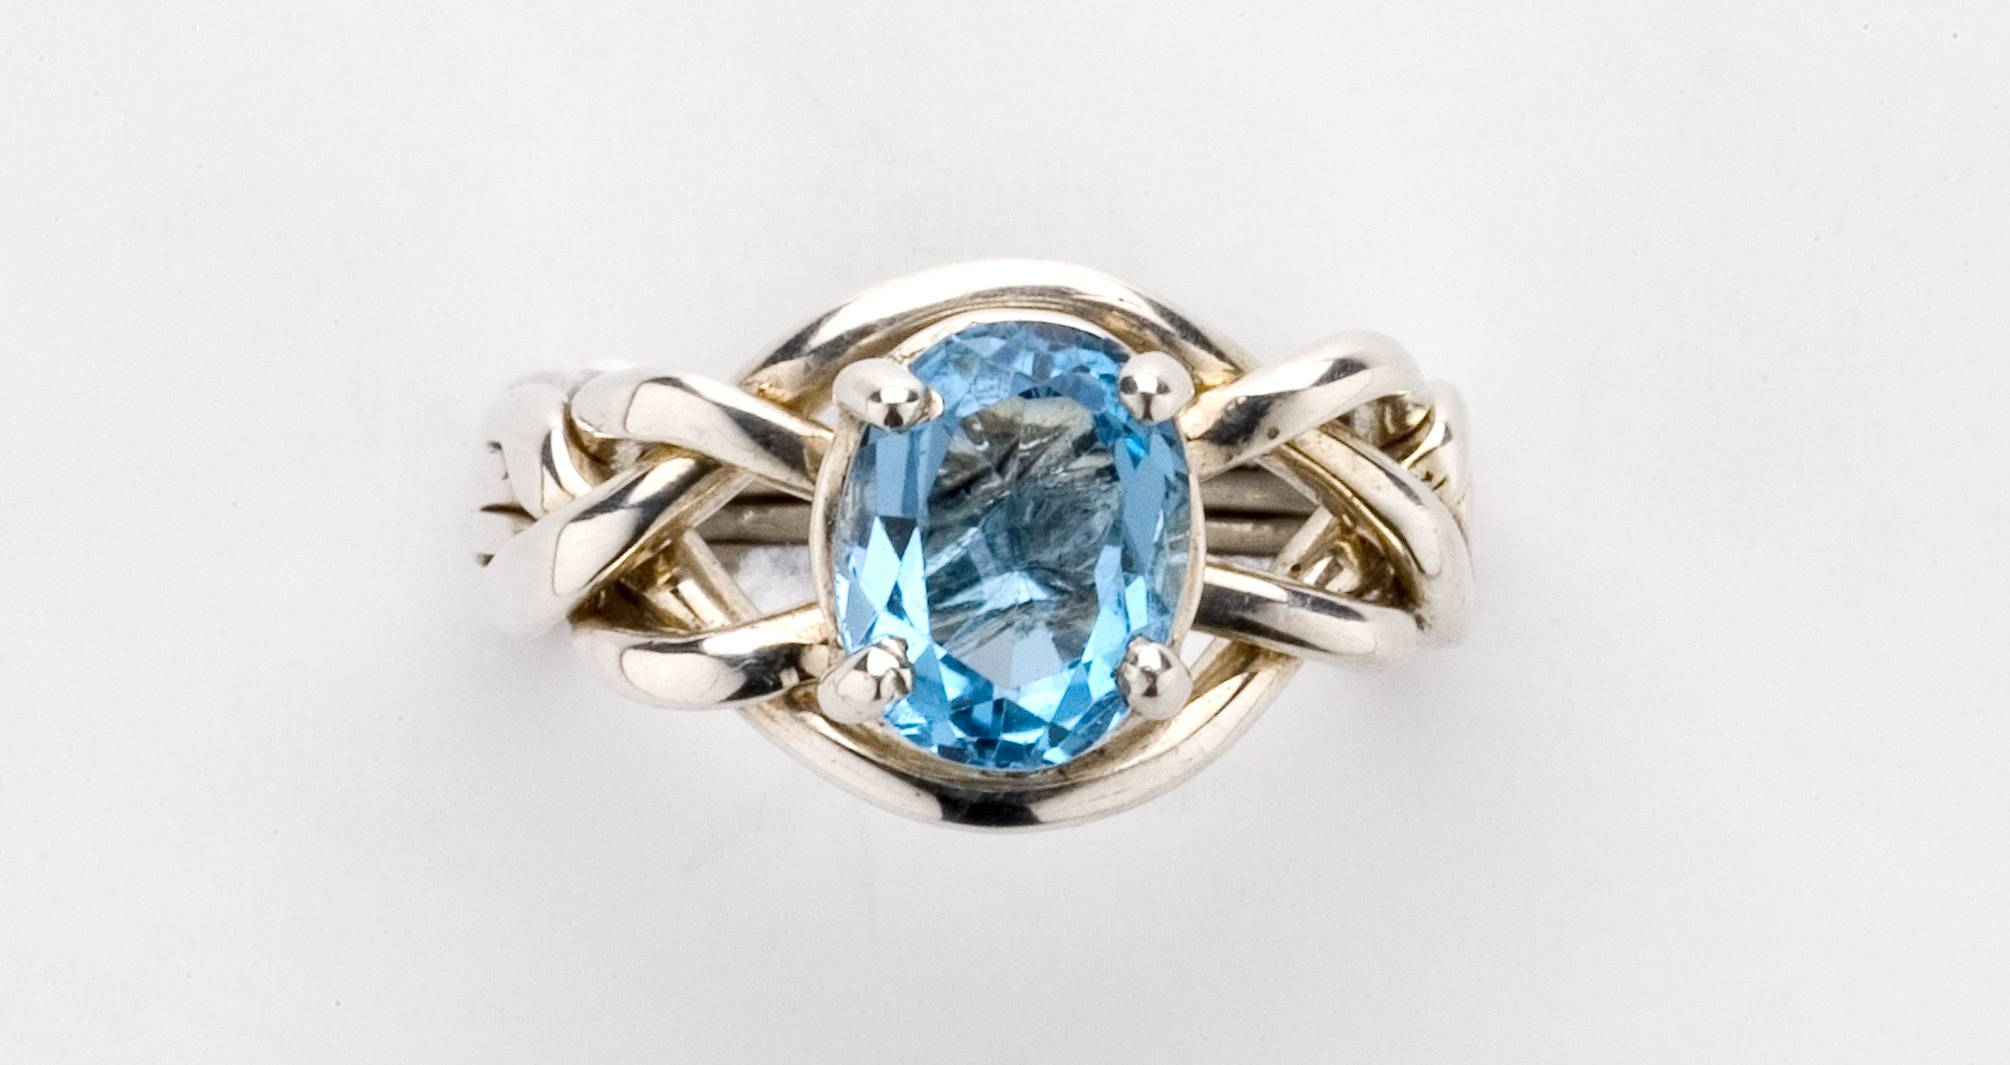 4Bt Blue Topaz Ladies' Puzzle Ring – Gold, Silver Or Platinum Pertaining To Engagement Puzzle Rings (Gallery 9 of 15)